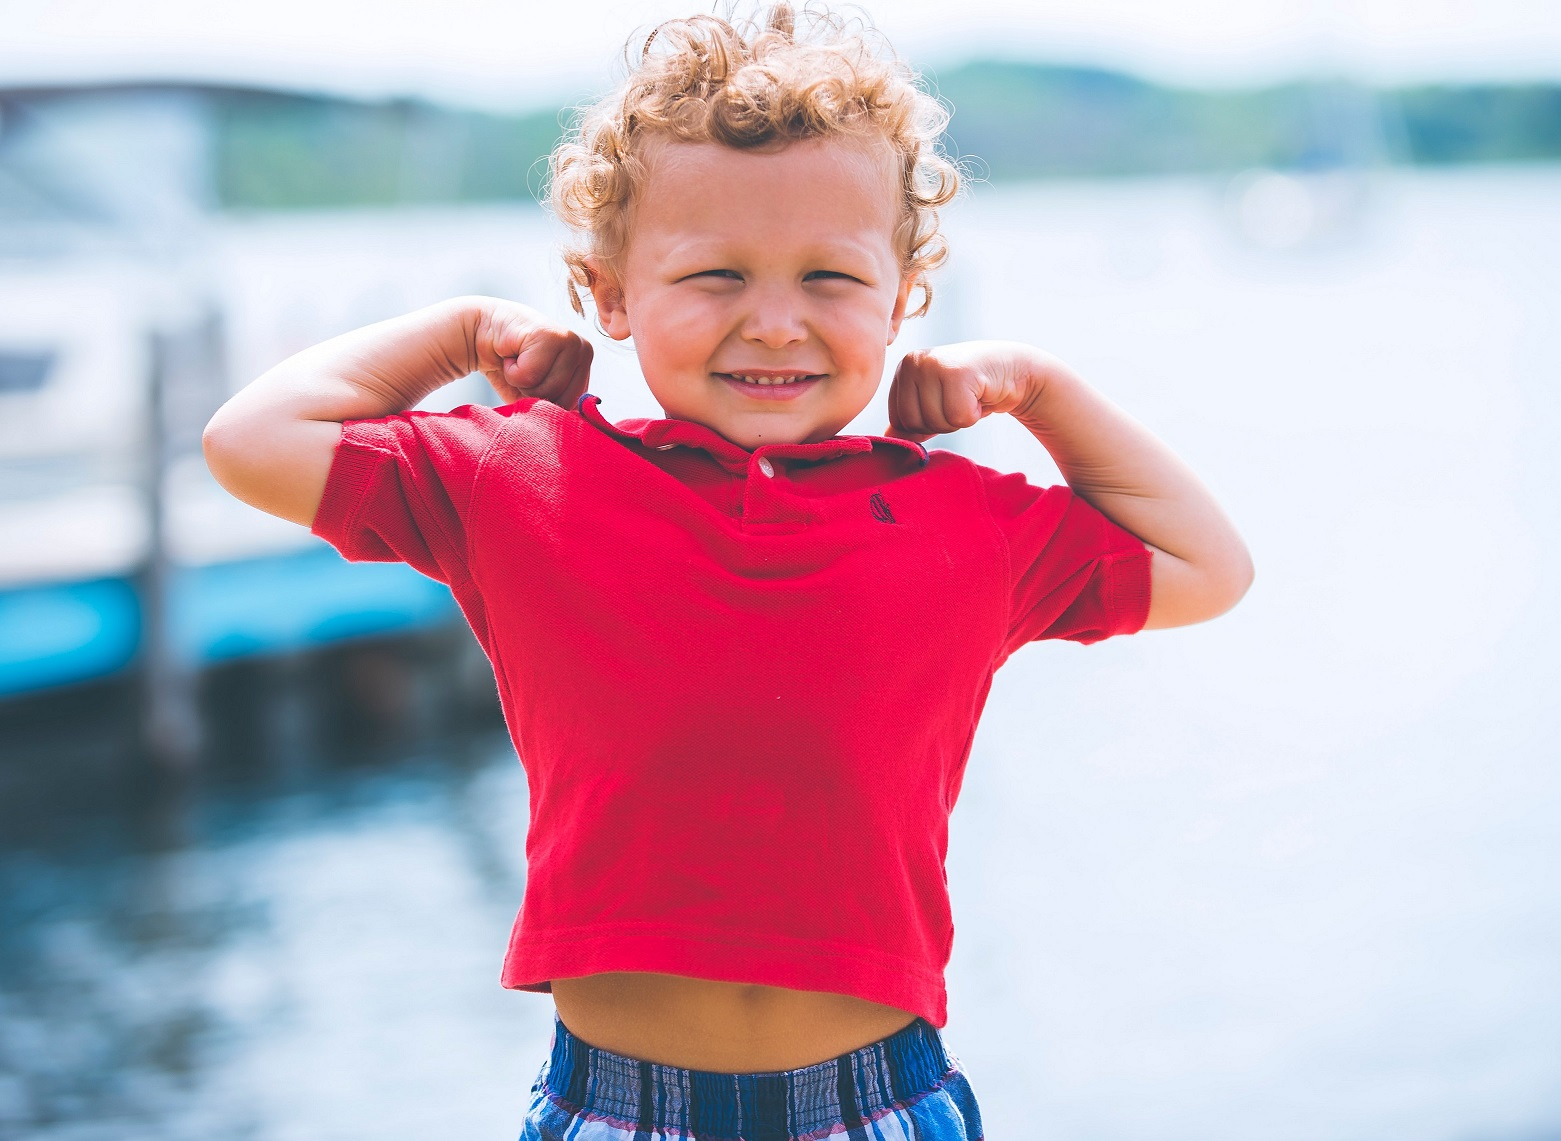 Little kid flexing his muscles